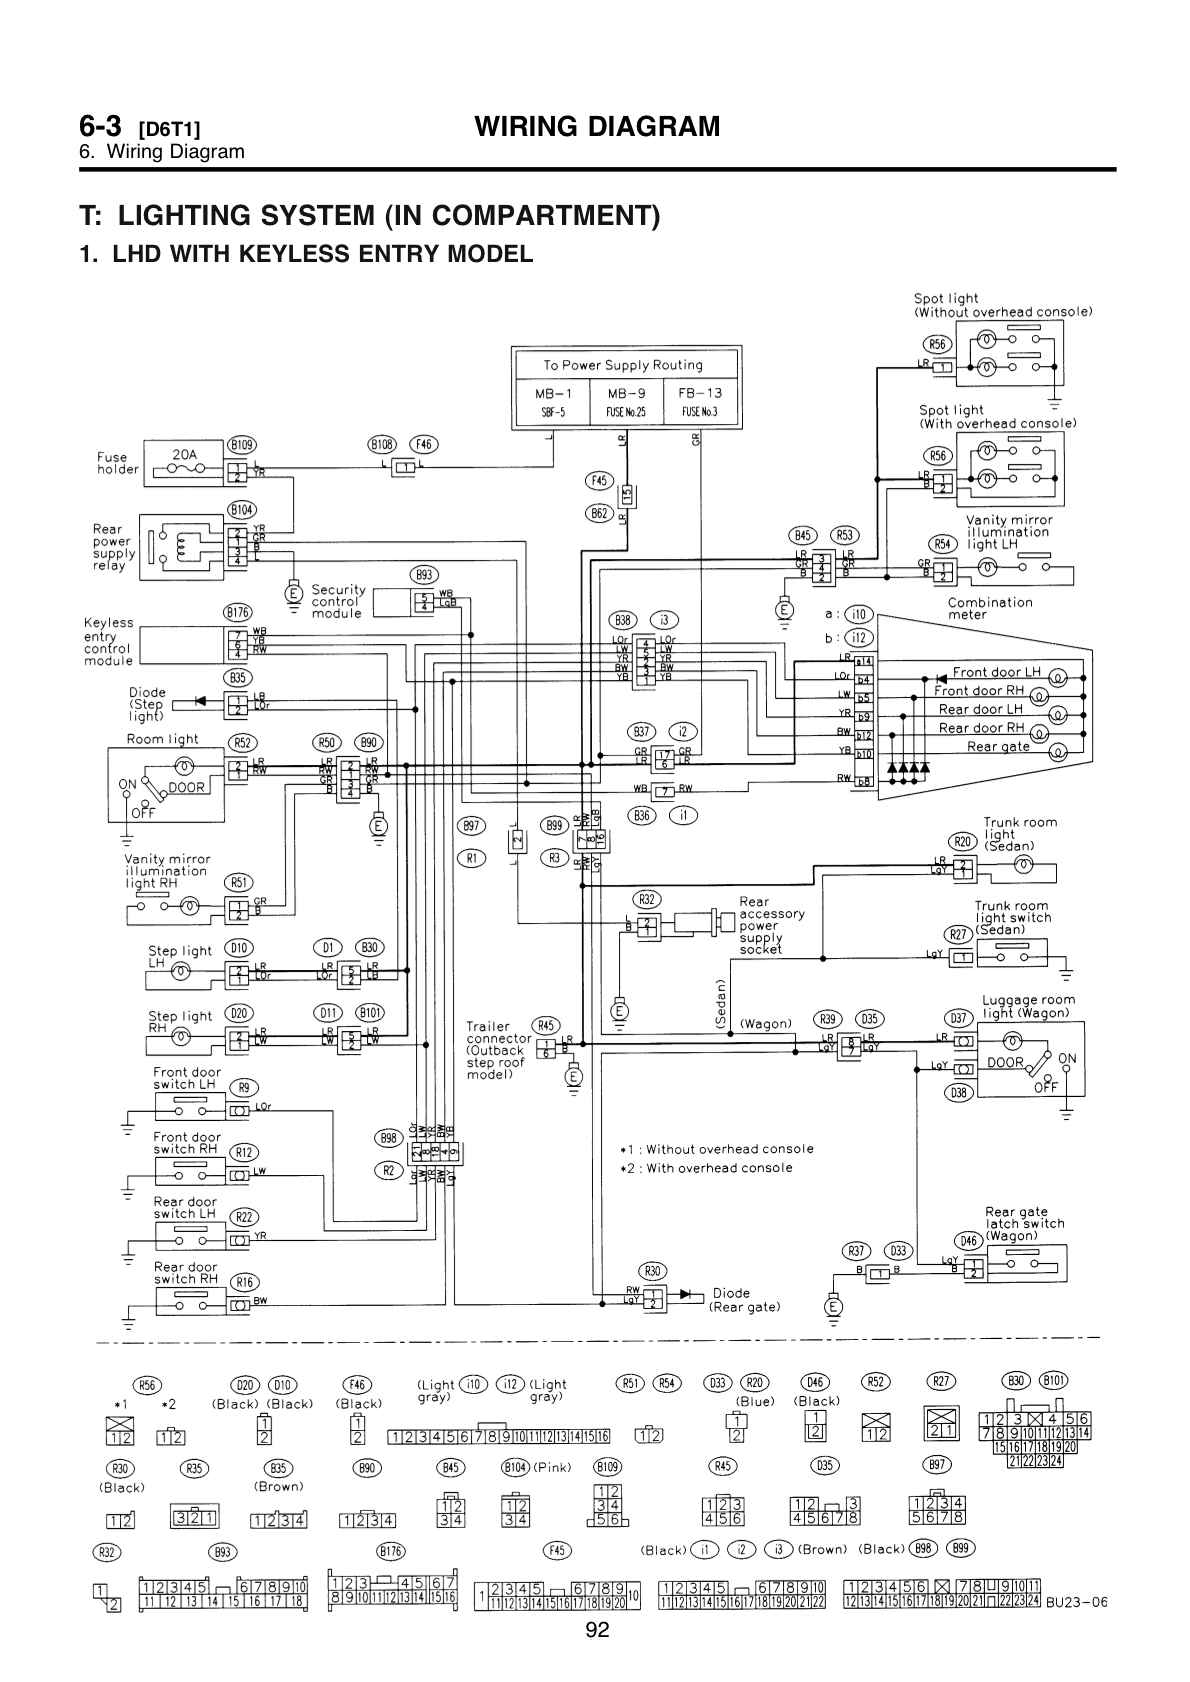 1999 subaru legacy wiring diagram   33 wiring diagram